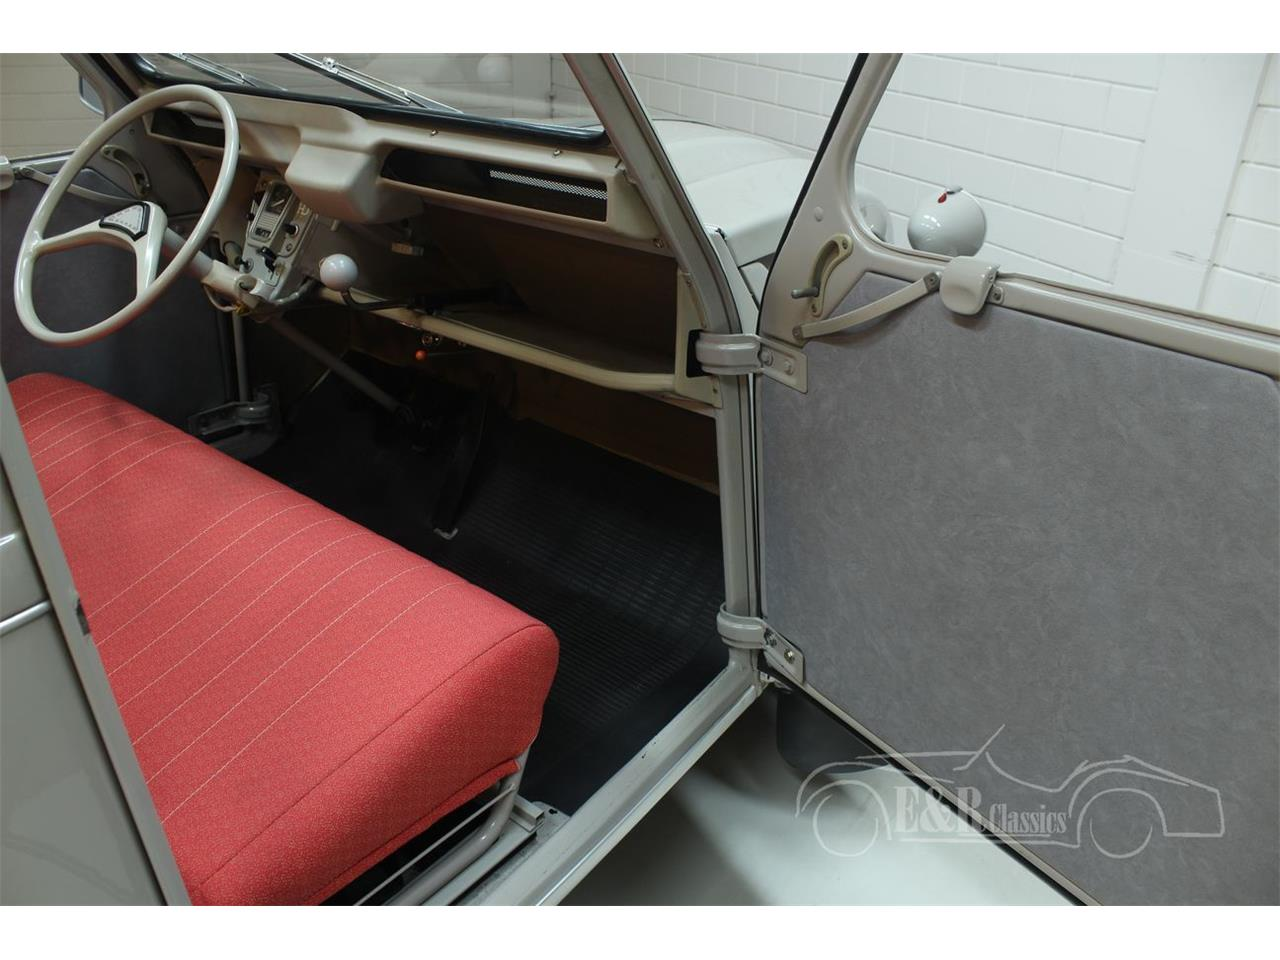 Large Picture of Classic 1966 Citroen 2CV located in - Keine Angabe - - $22,550.00 - PGSV